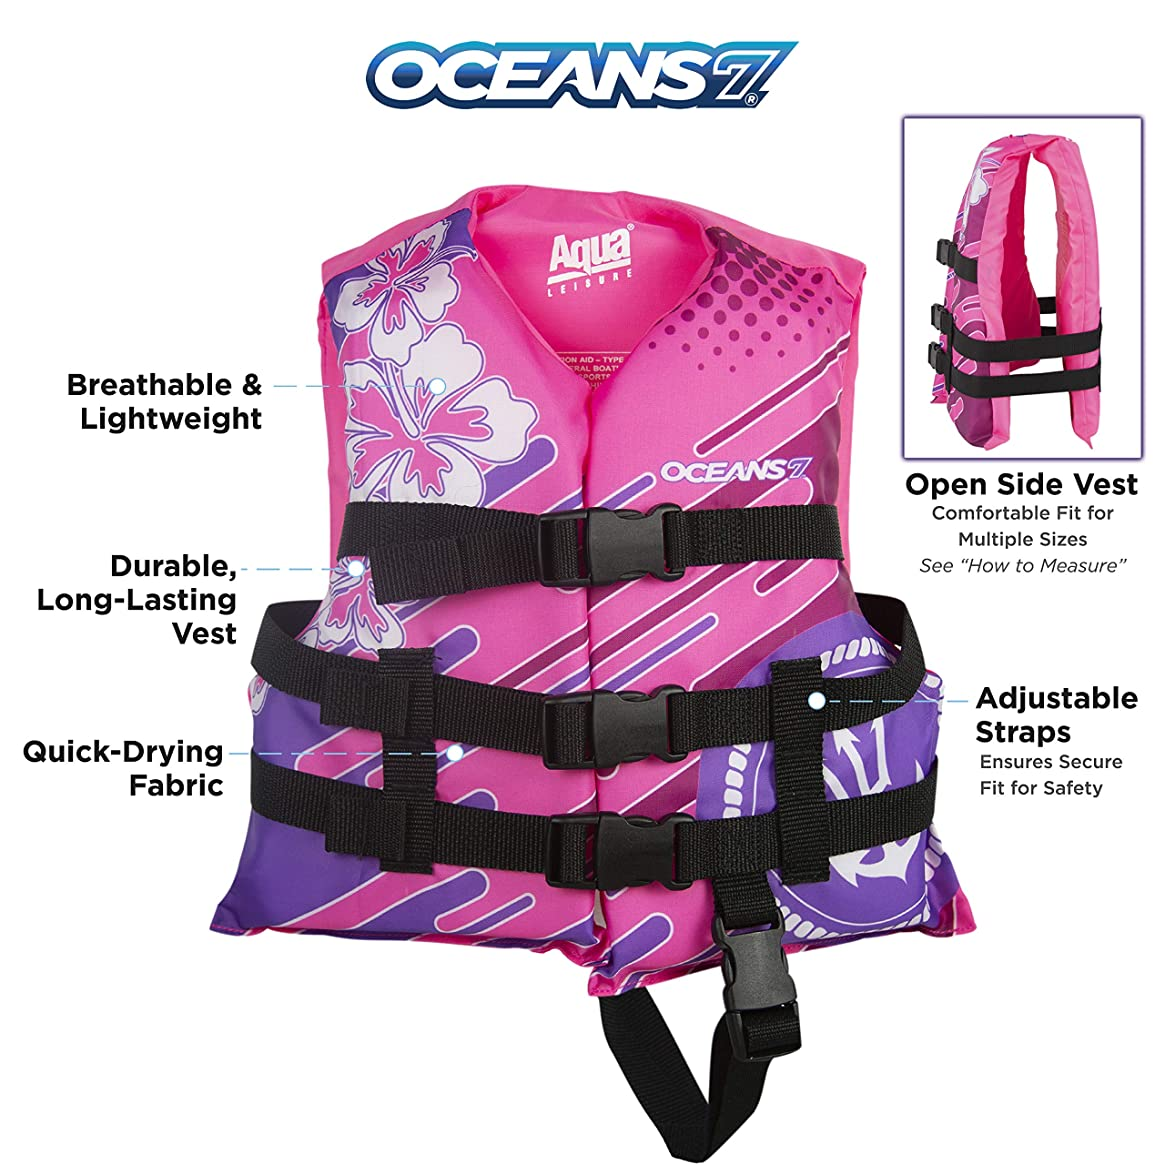 New & Improved Oceans7 US Coast Guard Approved, Child Life Jacket, Flex-Form Chest, Open-Sided Design, Type III Vest, PFD, Personal Flotation Device, Pink/Berry